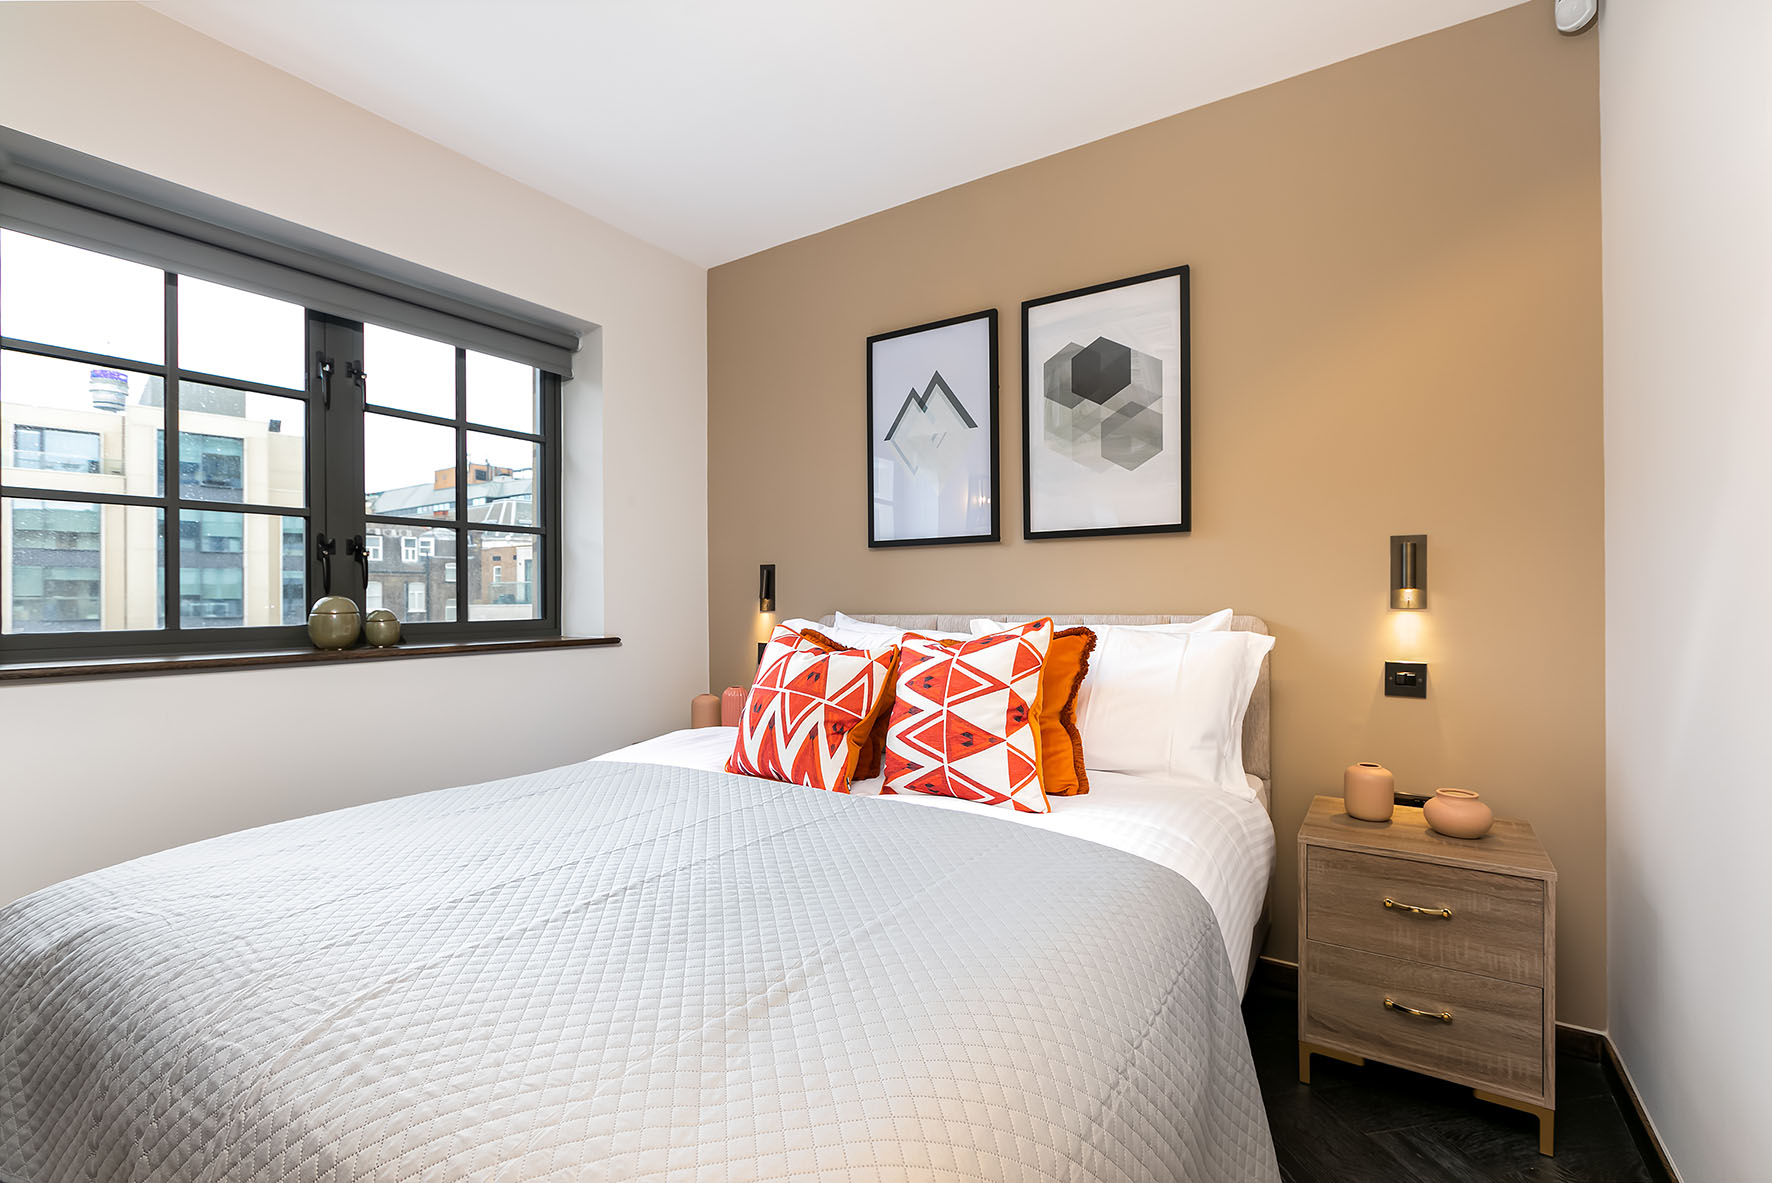 Lovelydays luxury service apartment rental - London - Soho - Noel Street VII - Lovelysuite - 1 bedrooms - 1 bathrooms - Queen bed - 82d21b1d261c - Lovelydays